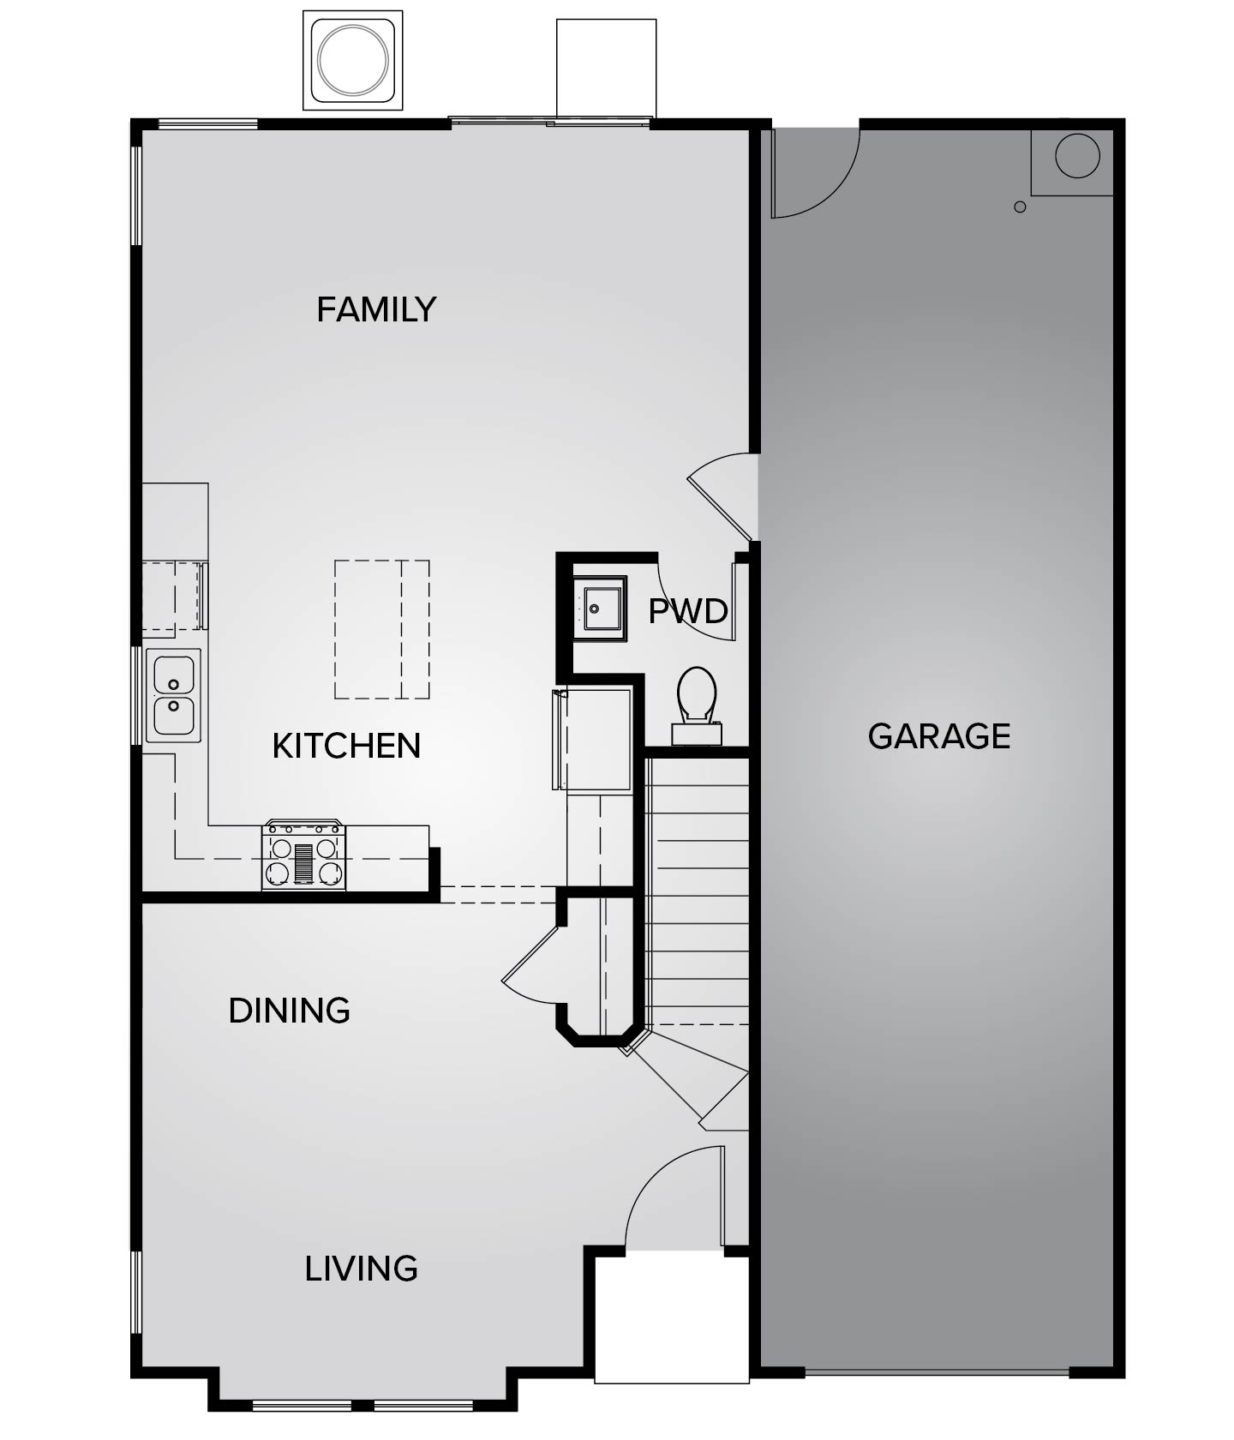 Photo of Residence 4 in Sacramento, CA 95823